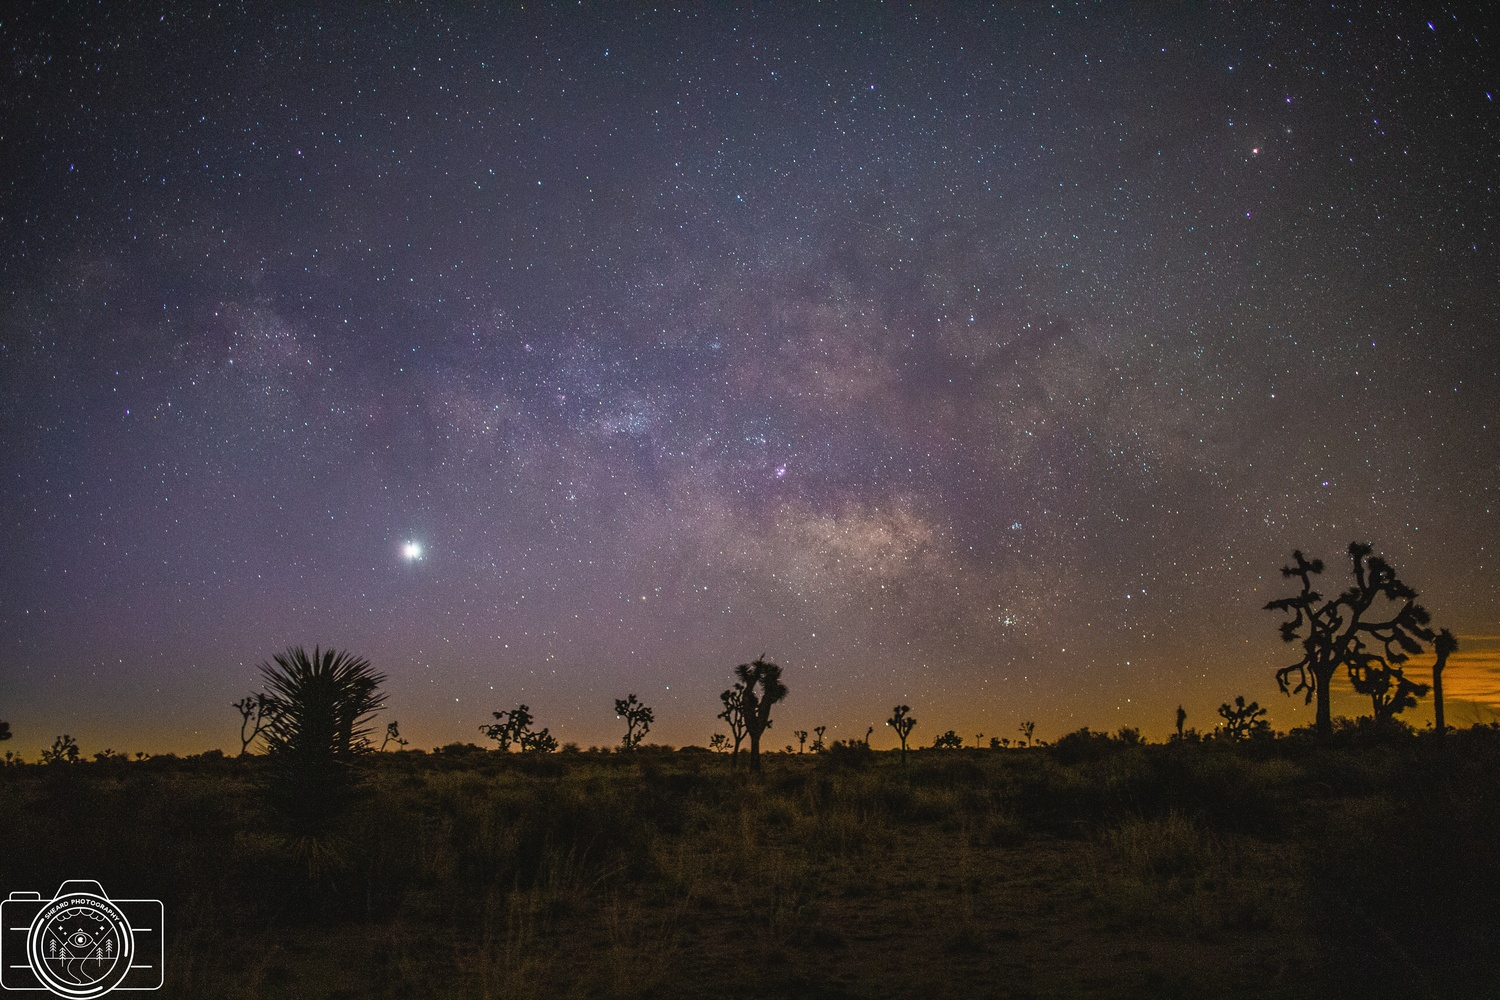 Milky Way by Greg Sheard